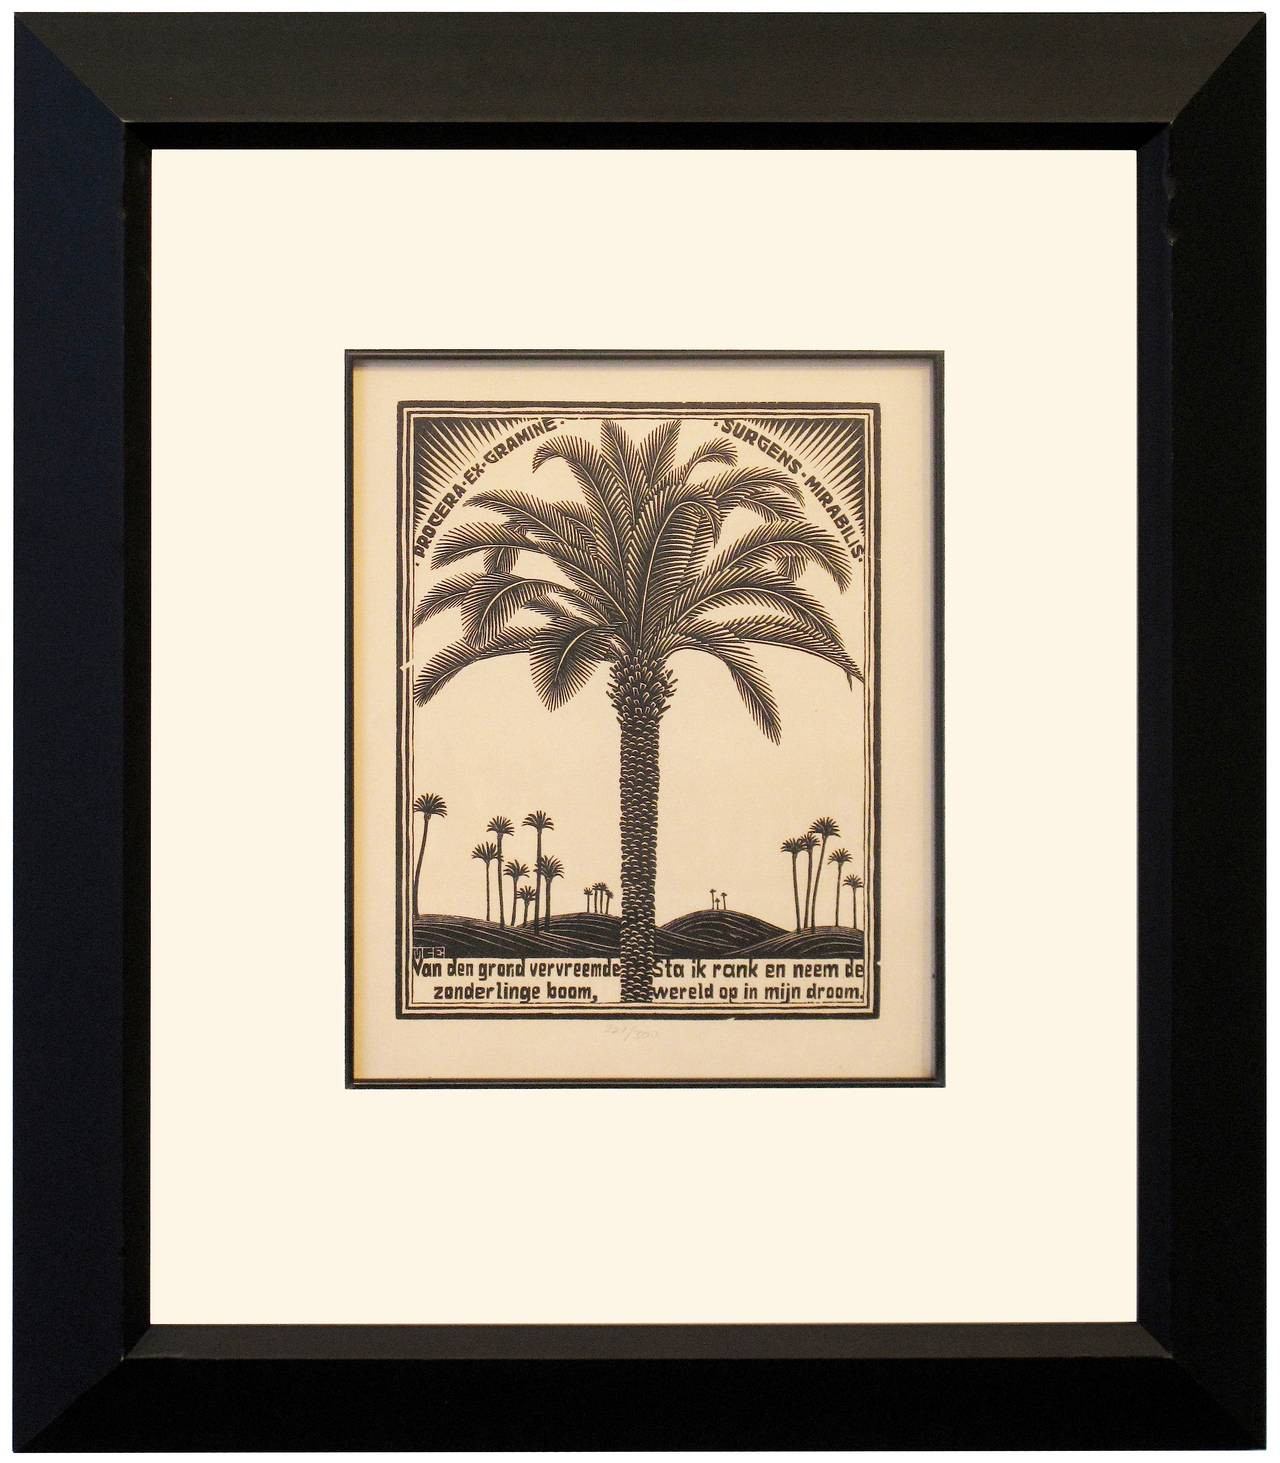 Emblemata - Palm Tree, - Surrealist Print by M.C. (Maurits Cornelius) Escher